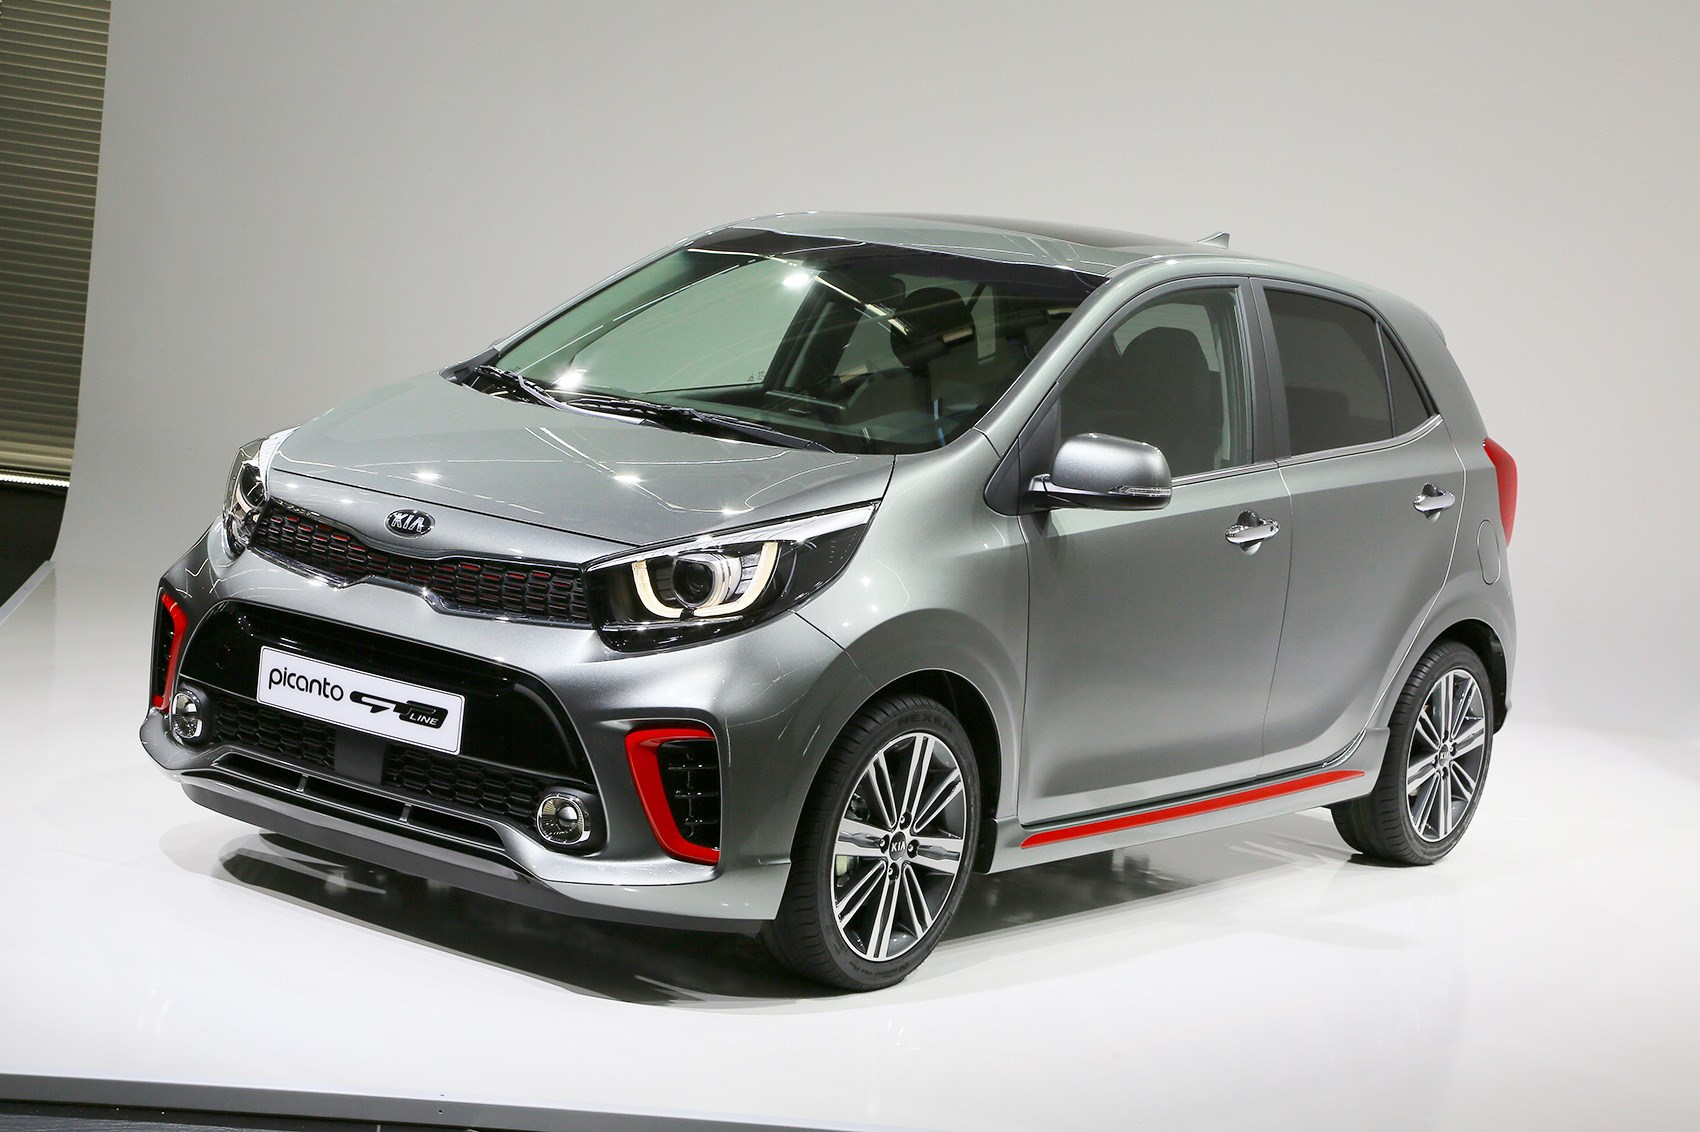 new kia picanto v3 0 meet korea 39 s slickest city car yet car magazine. Black Bedroom Furniture Sets. Home Design Ideas